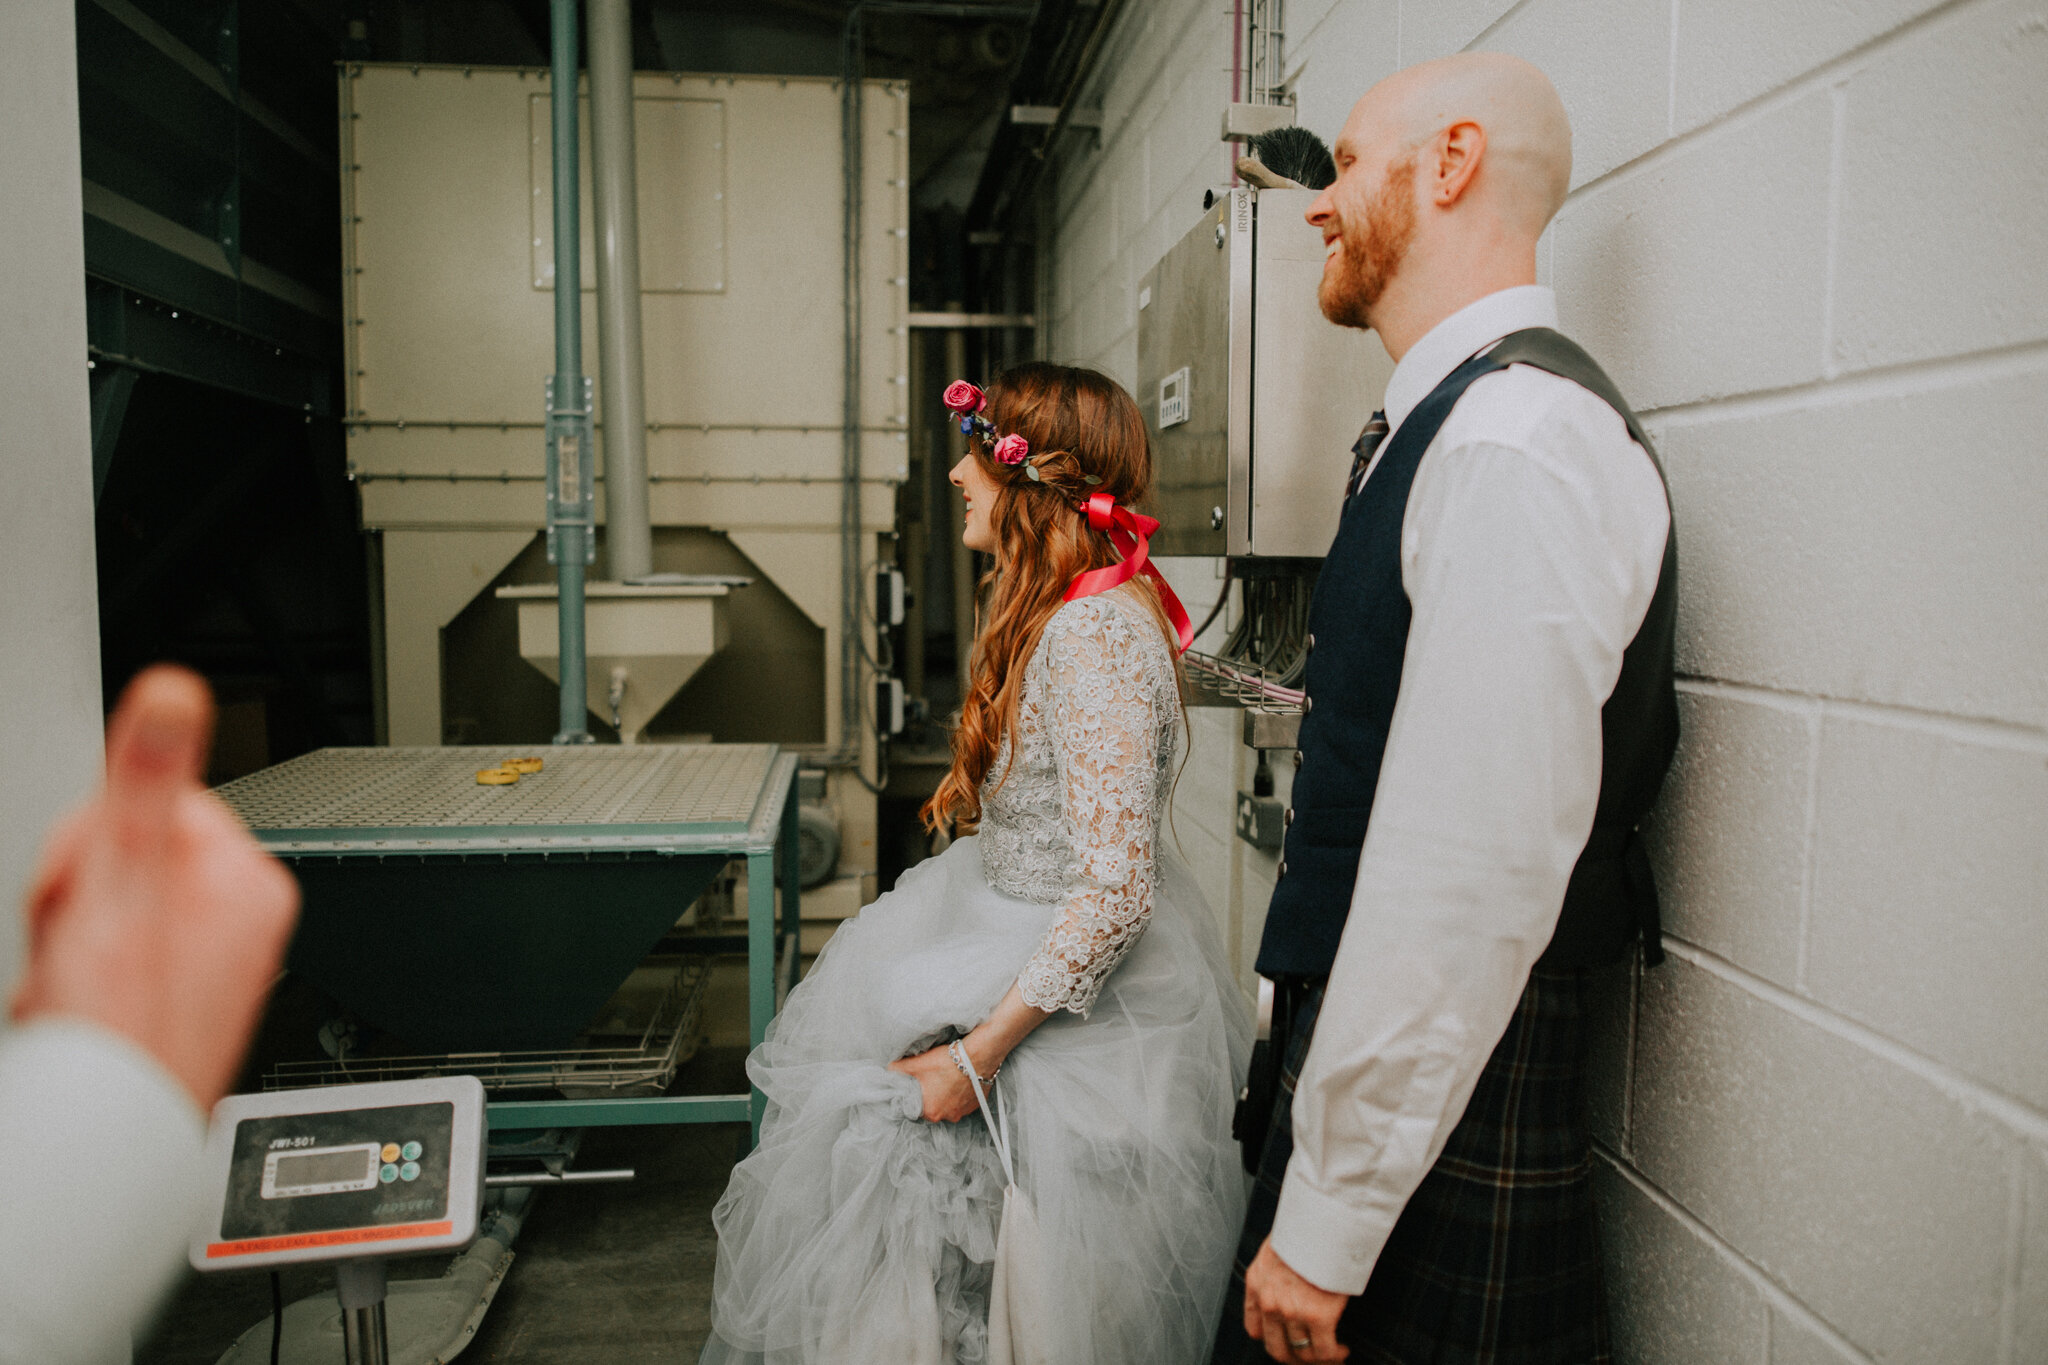 The newlyweds are inside the Brewery for the tour